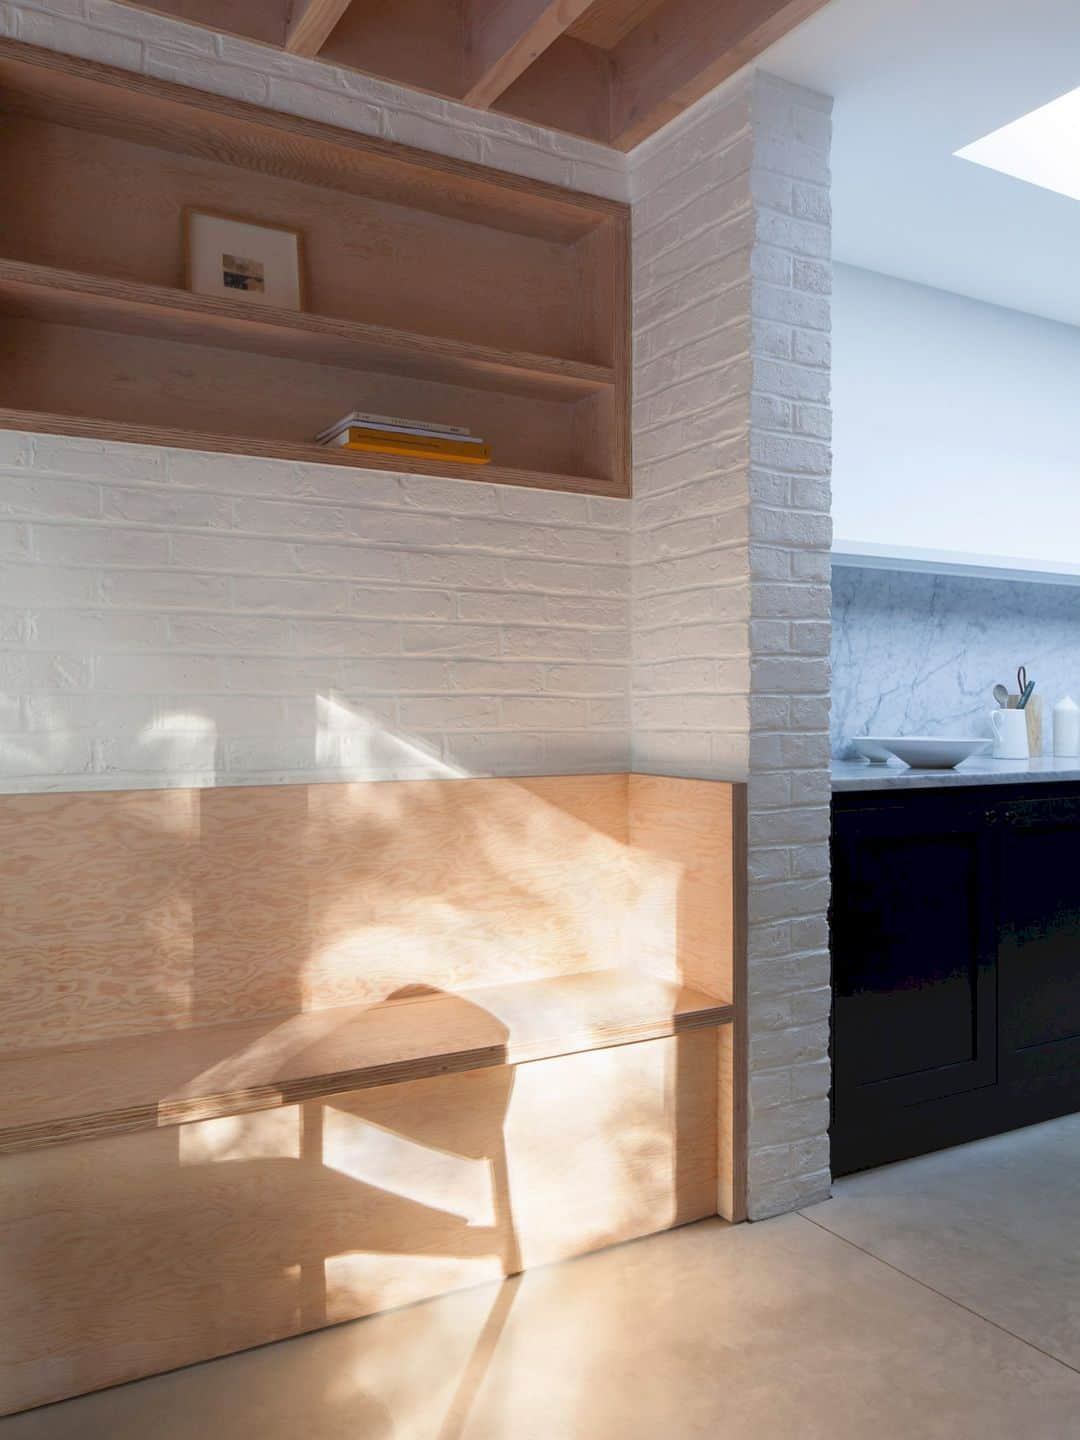 A Ground Floor Renovation Of A Victorian Terraced House In London 4